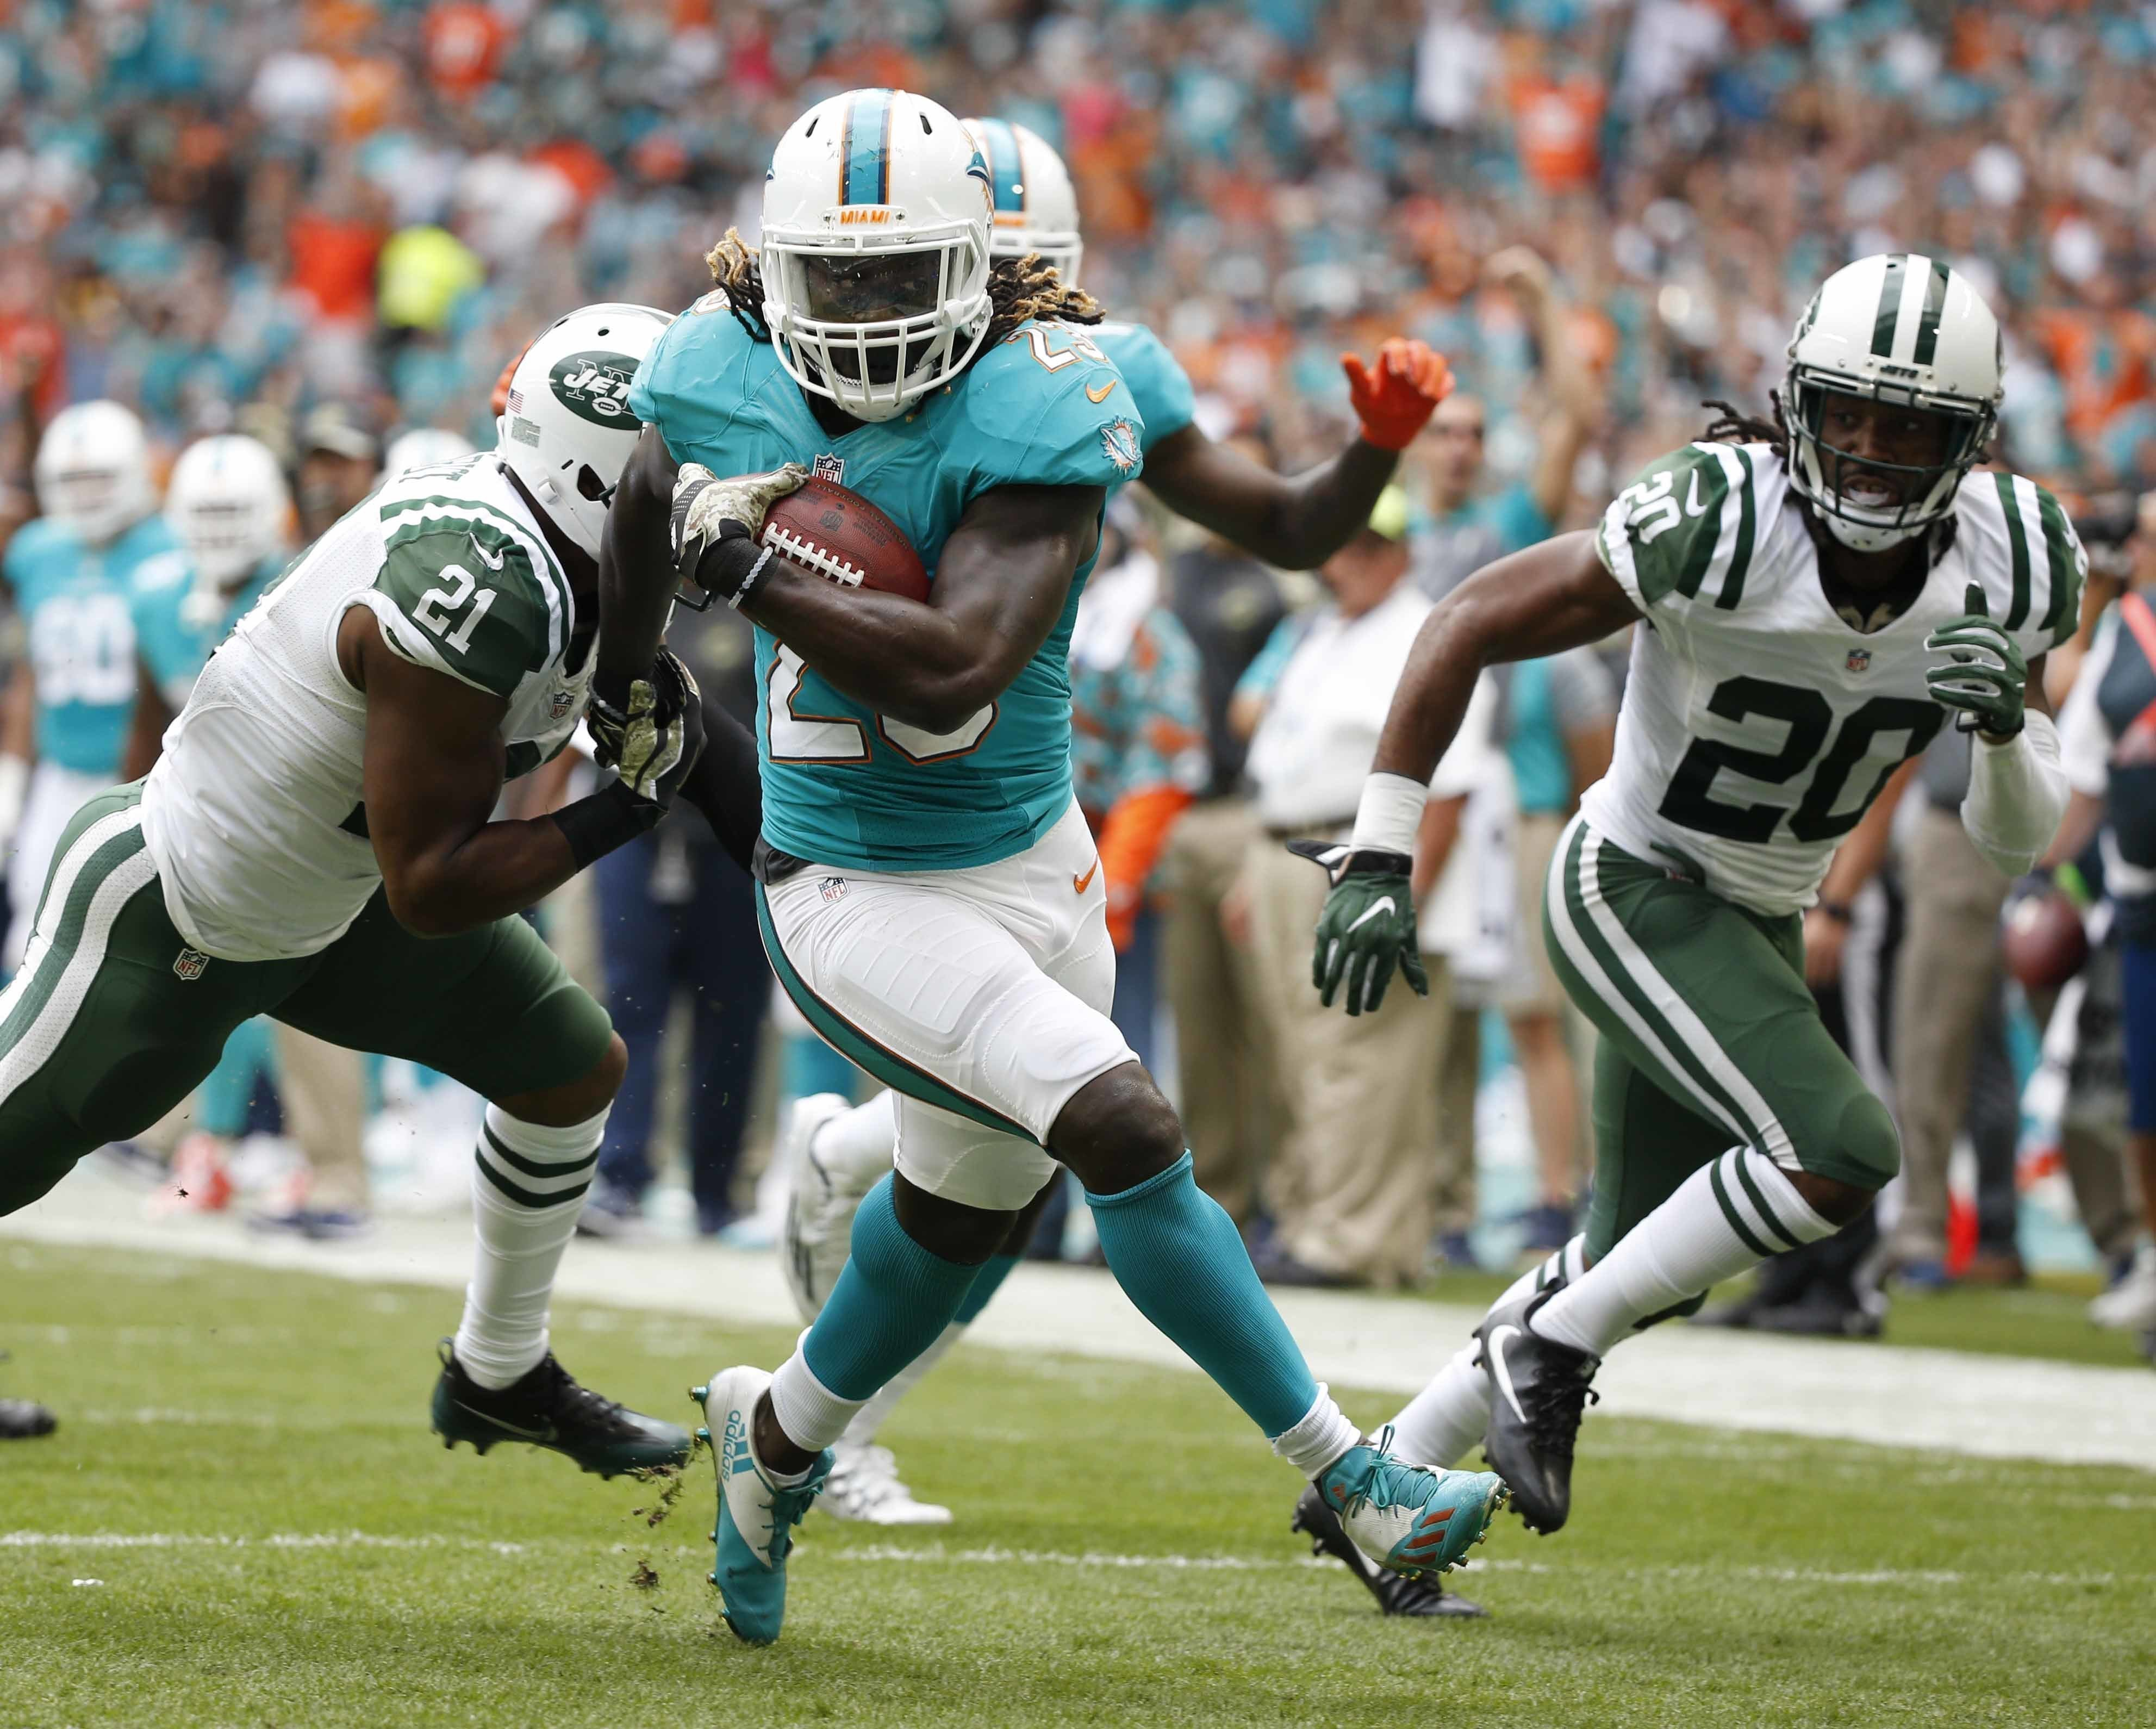 FILE - In this Nov. 6, 2016, file photo, Miami Dolphins running back Jay Ajayi (23) runs for a touchdown during the first half of an NFL football game against the New York Jets, in Miami Gardens, Fla. The surprising success by such low-profile rushers as